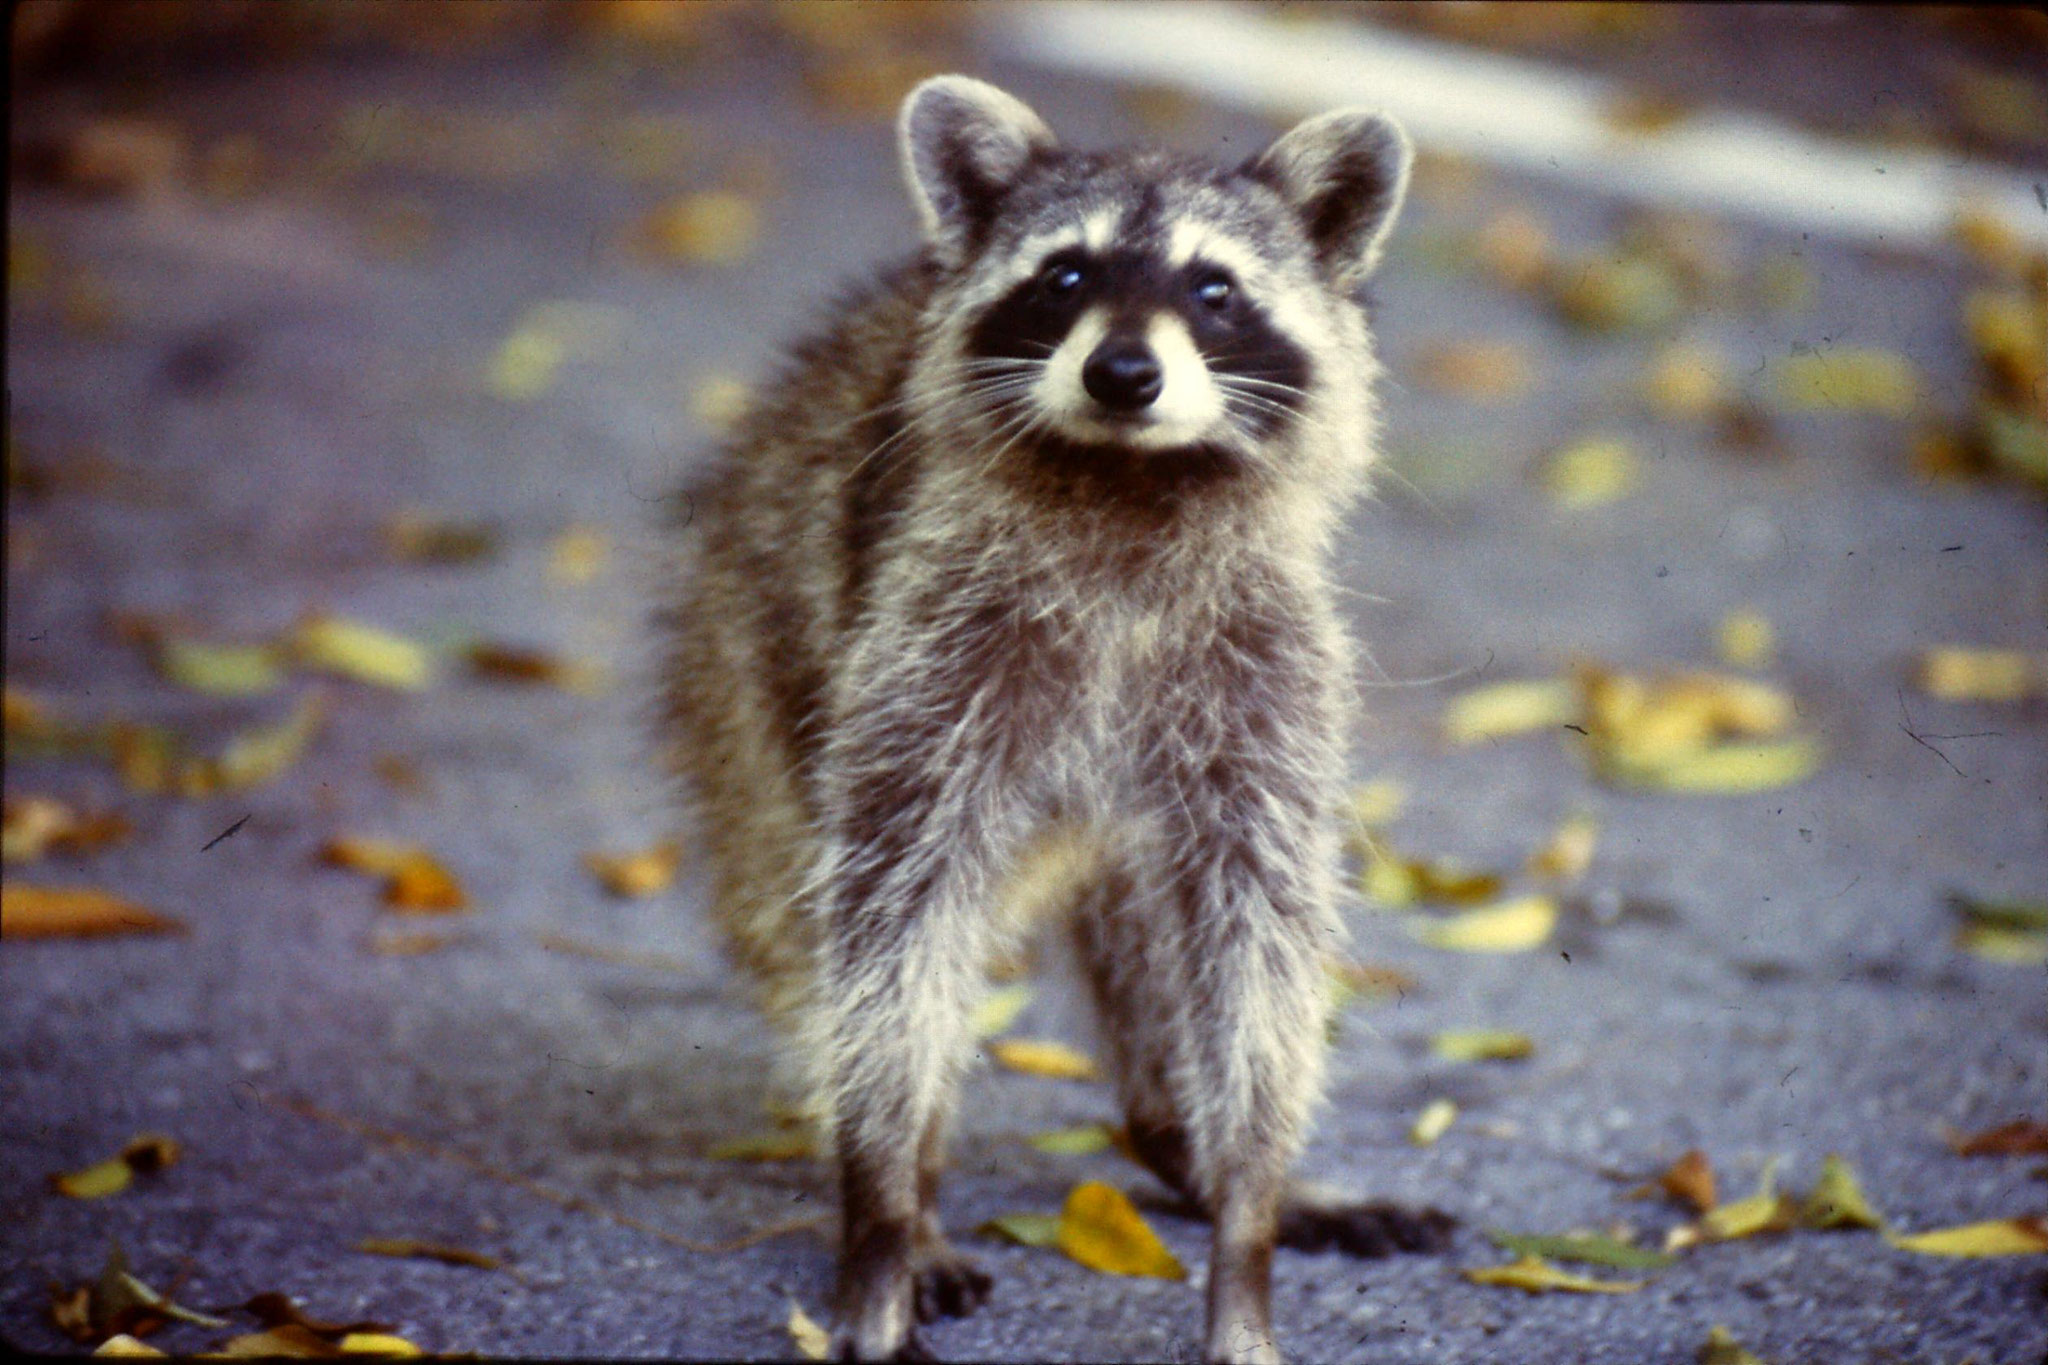 8/3/1991: 0: Key Biscayne raccoon